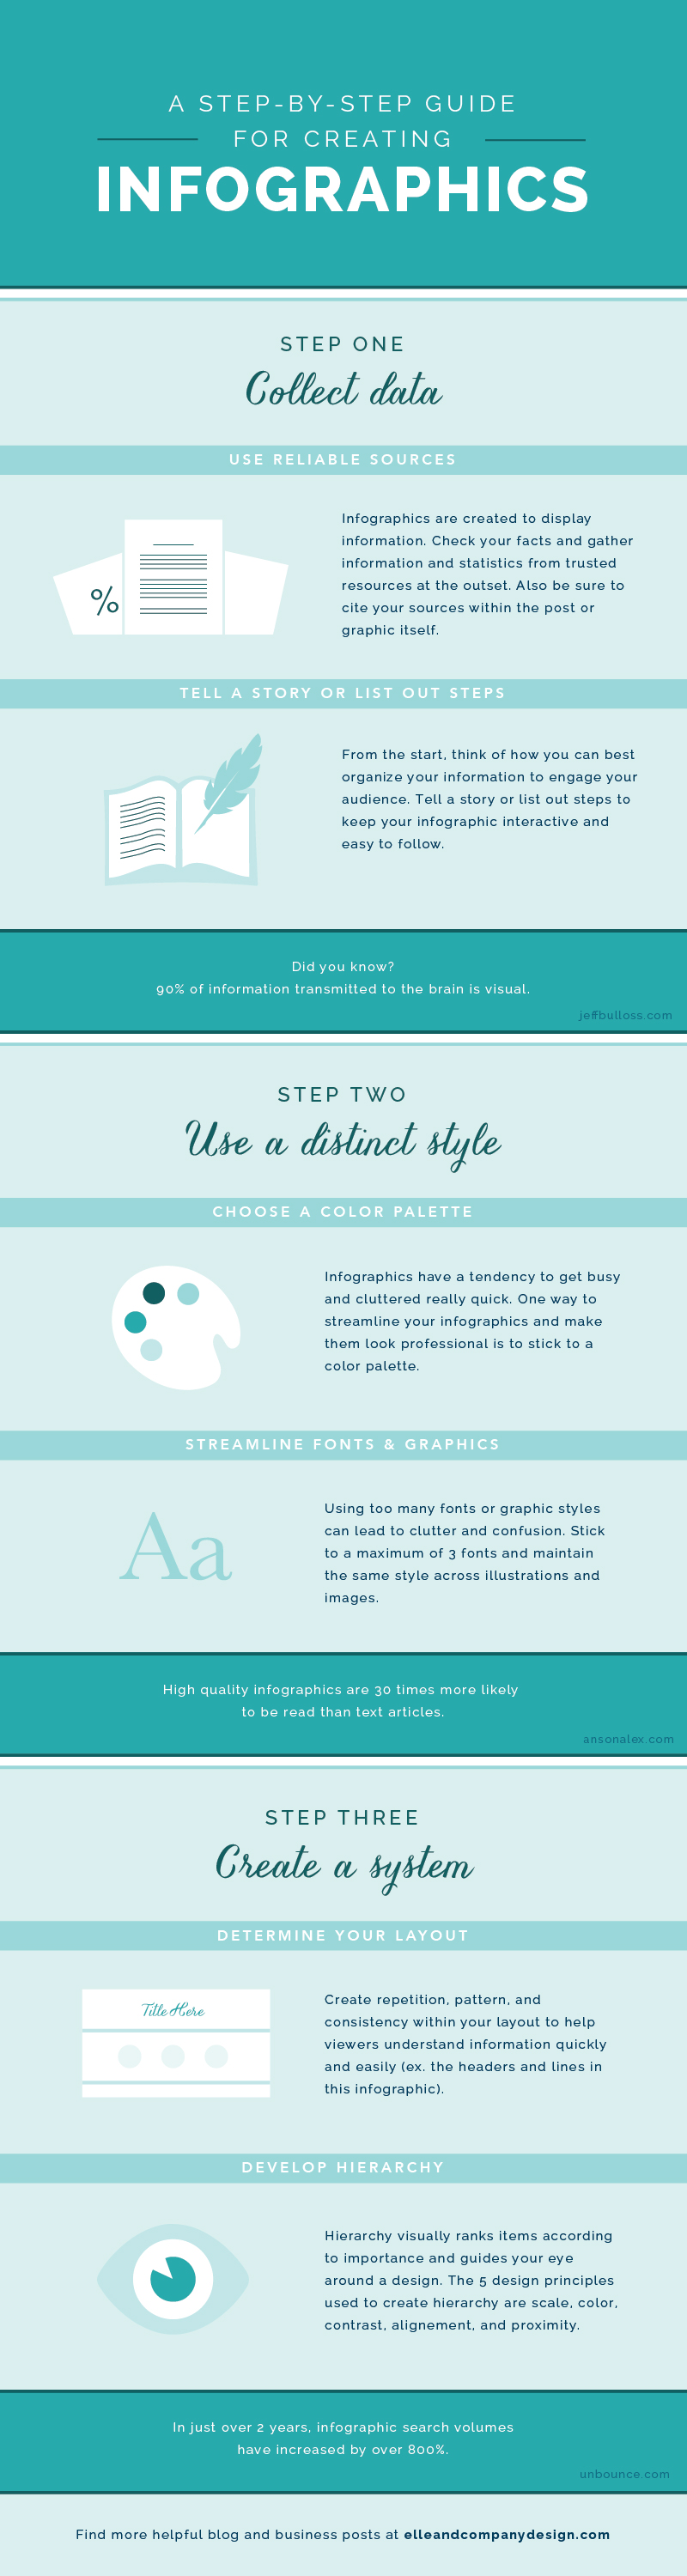 A Step-By-Step Guide for Creating Infographics